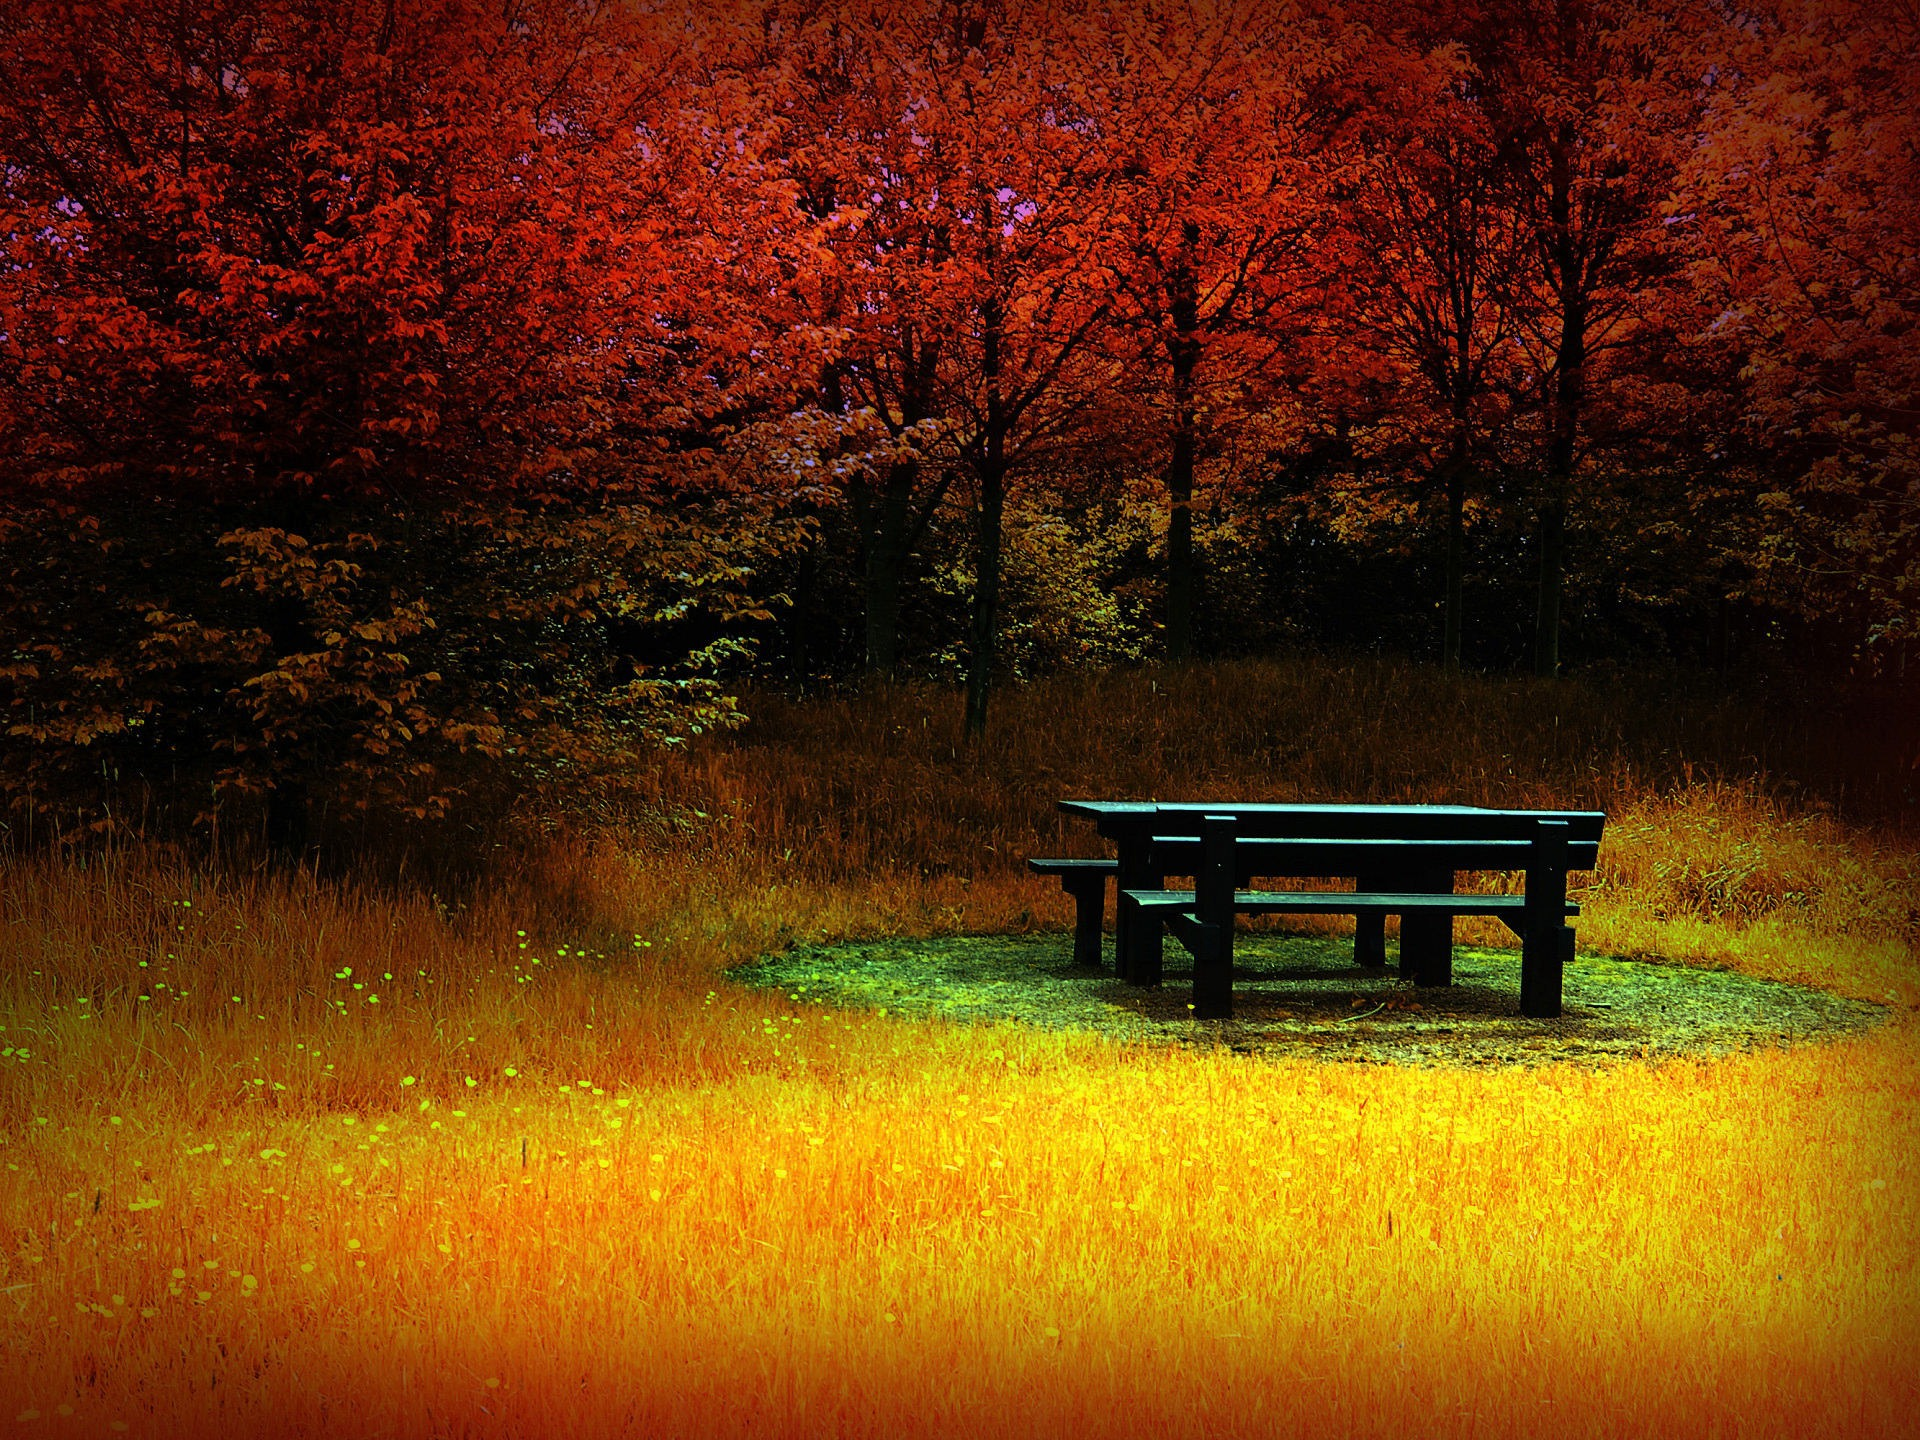 Autumn HD wallpaper - Autumn Wallpapers Collection